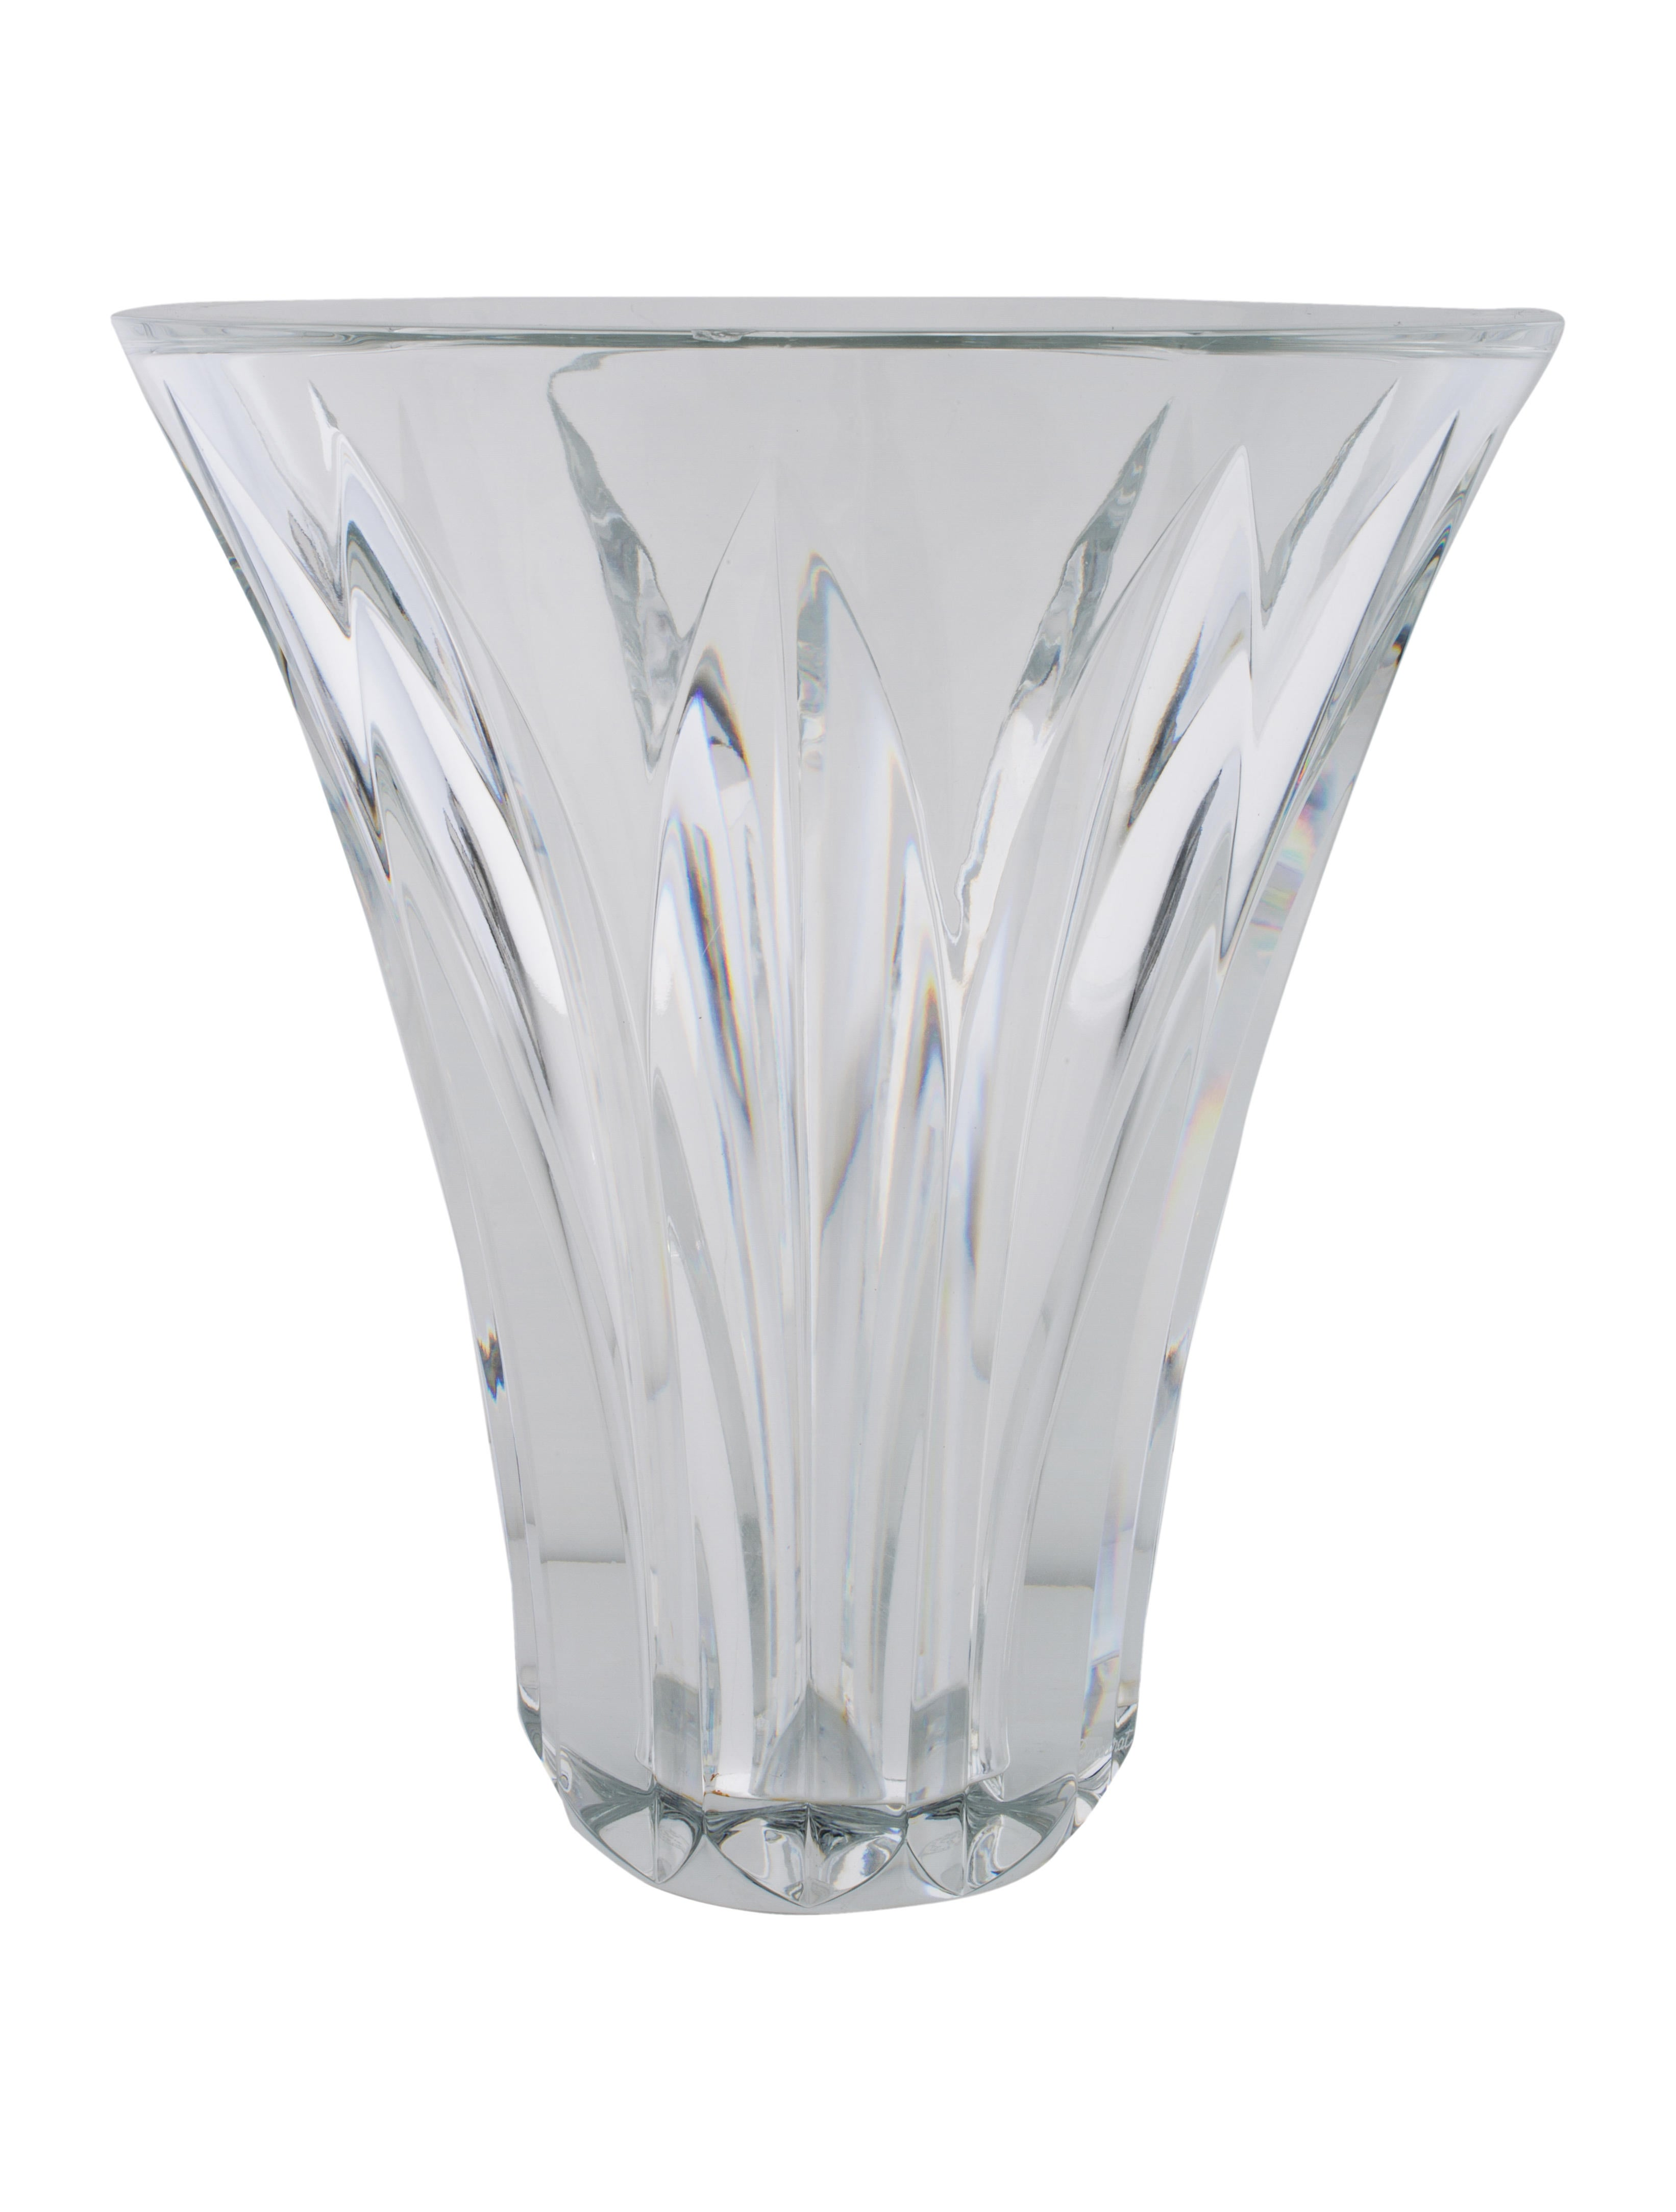 Baccarat crystal flared vase decor and accessories Crystal home decor